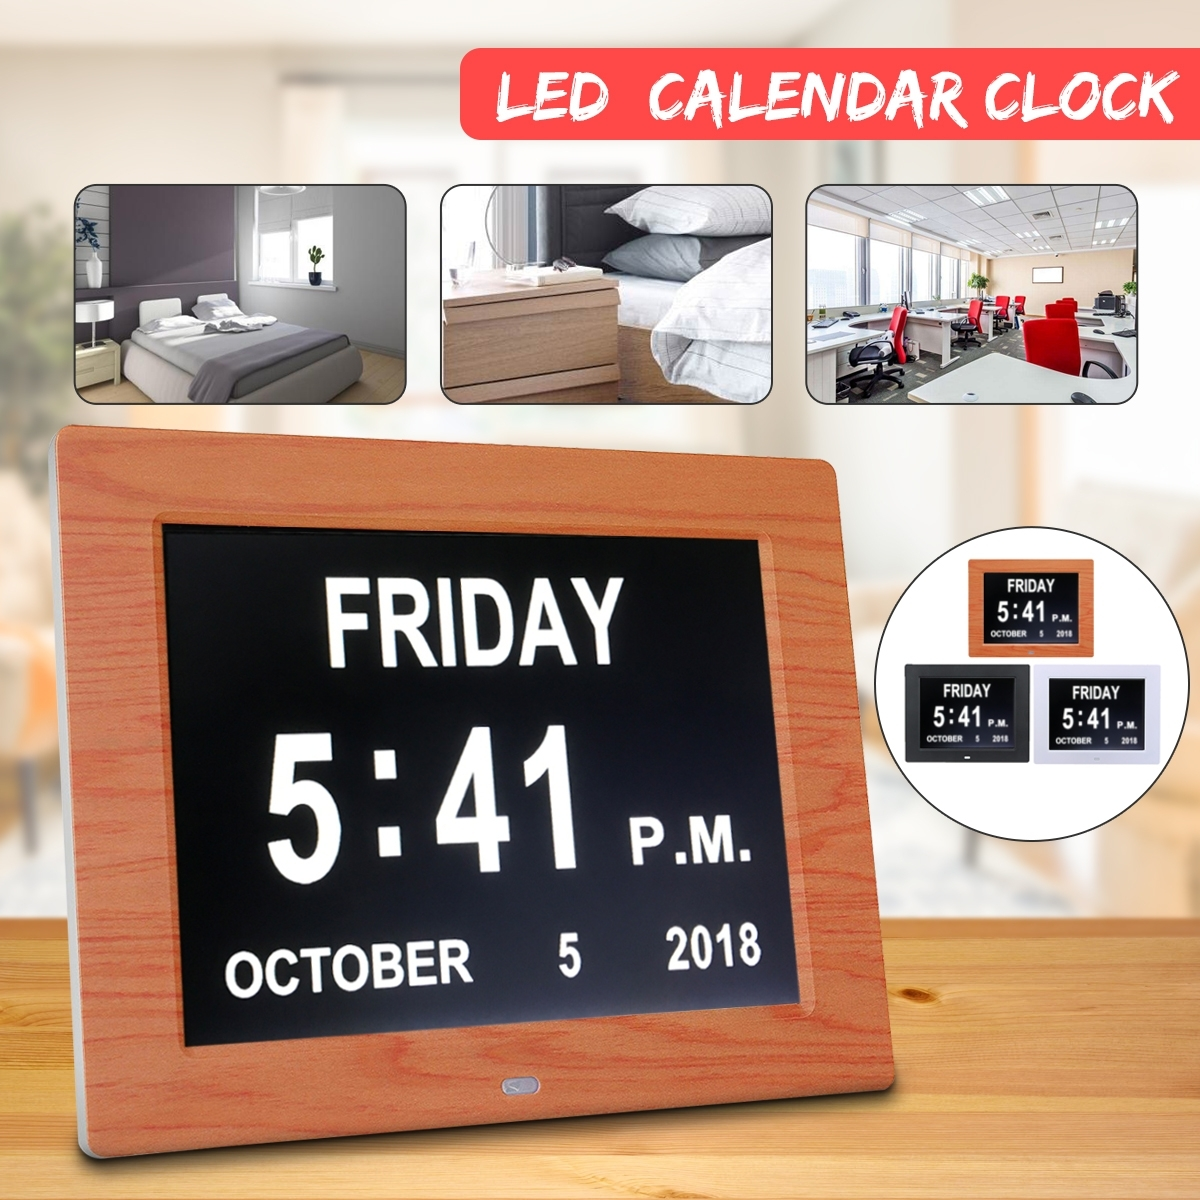 Us $43.94 43% Off|7Inche Led Dementia Digital Calendar Day/week/month/year  Clock Stand Photo Frame Large Wall Clock Calendar Alarm Day/night Mode|Wall